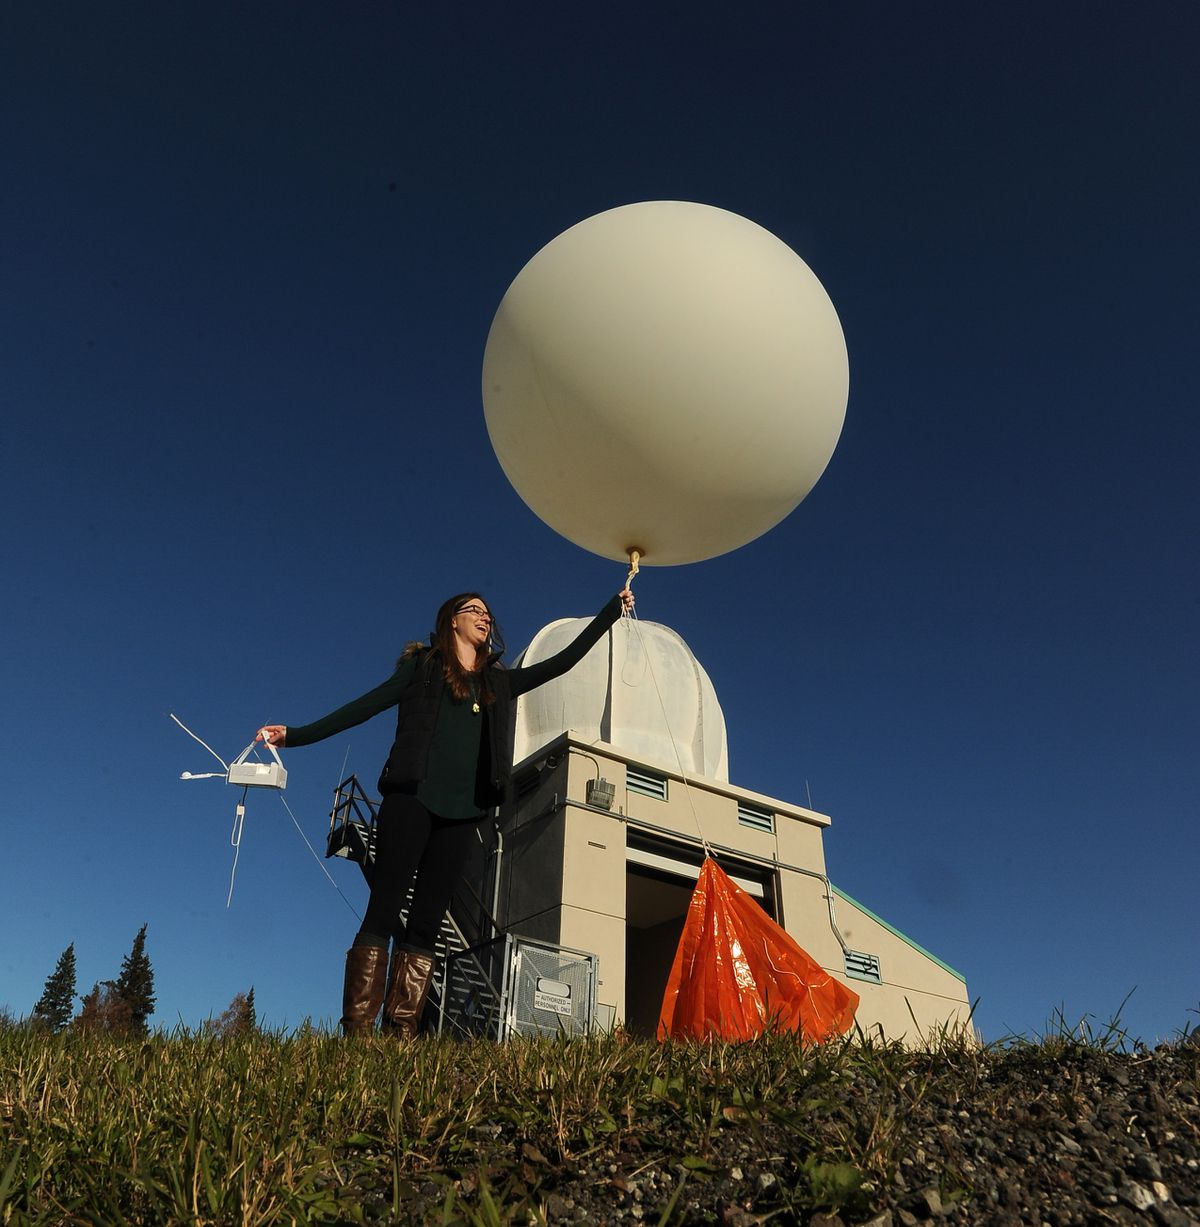 Rebecca Duel, meteorologist at the Anchorage Forecast Office of the National Weather Service, launches a weather balloon at the center in Anchorage on Friday, Oct. 7, 2016. (Bob Hallinen / Alaska Dispatch News)